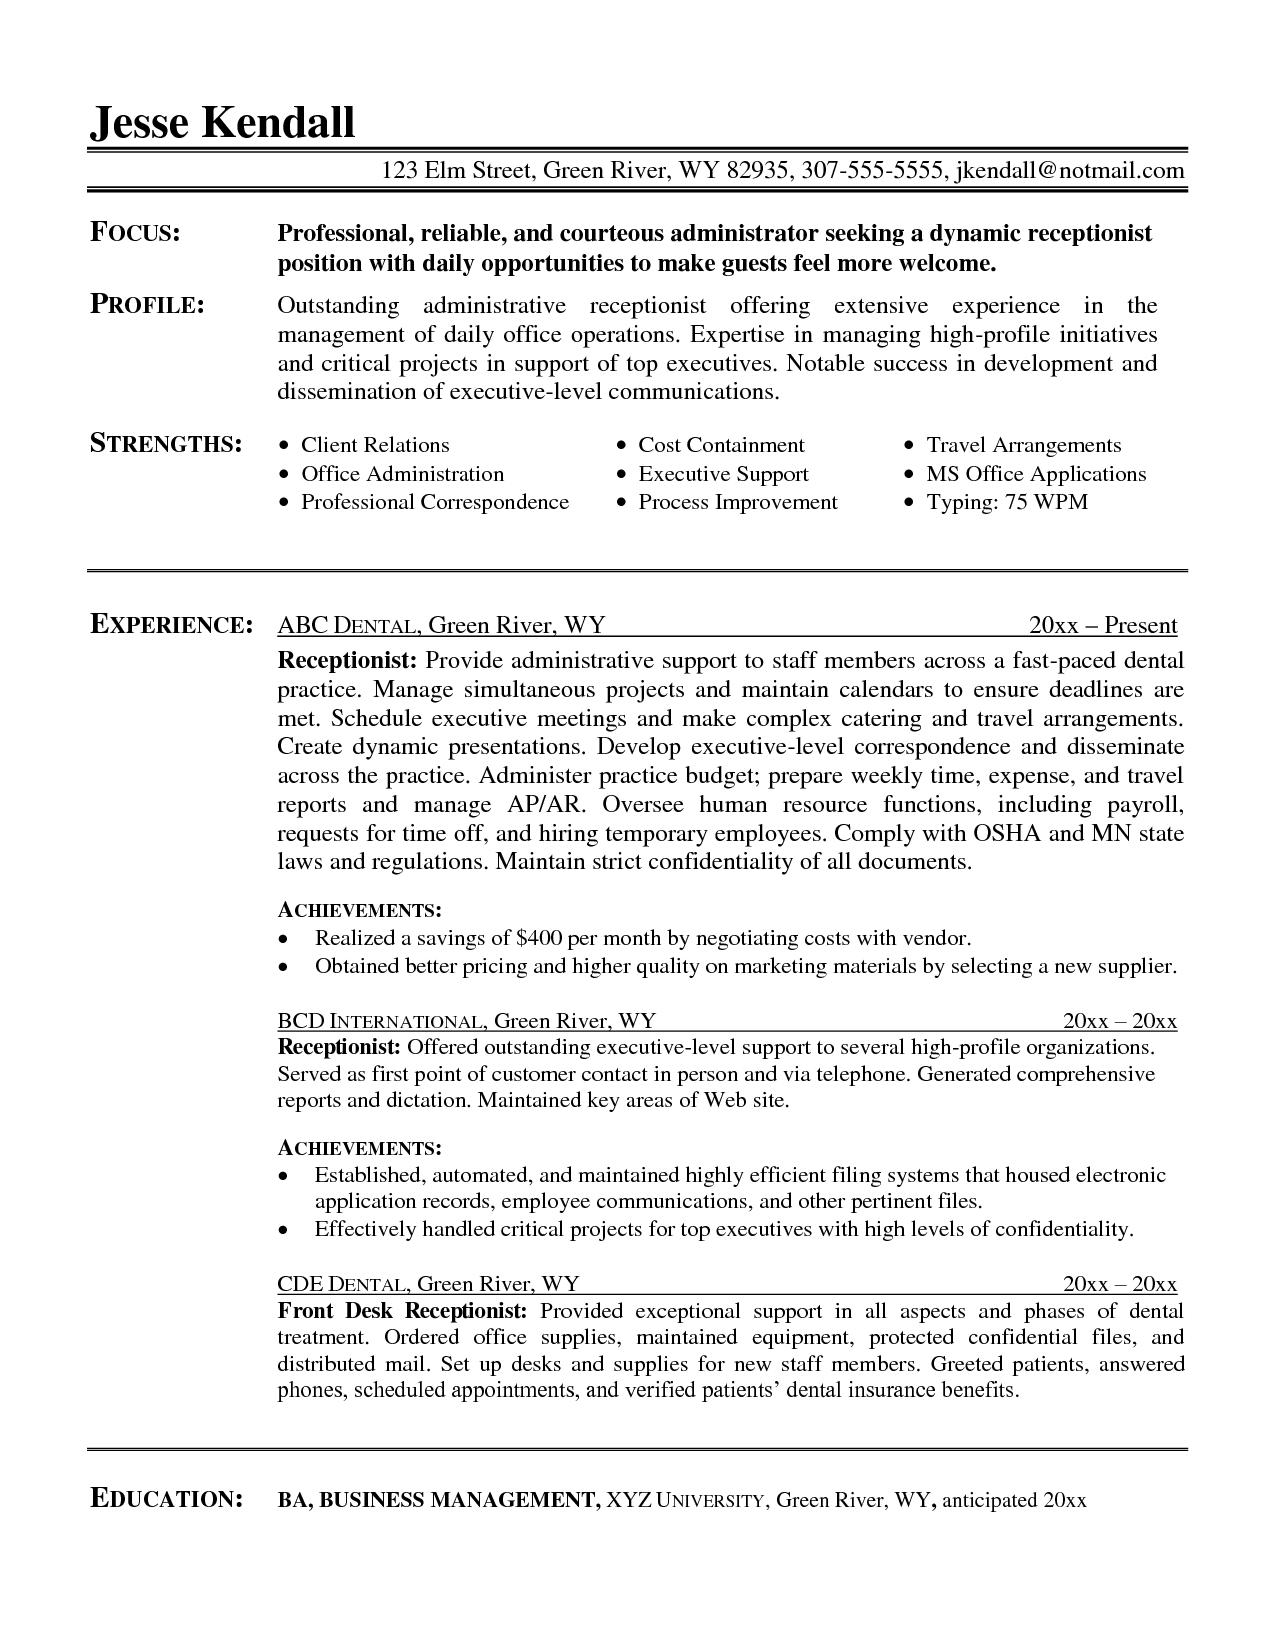 Resume For Medical Receptionist Sample Receptionist Resume Example  Resume  Pinterest